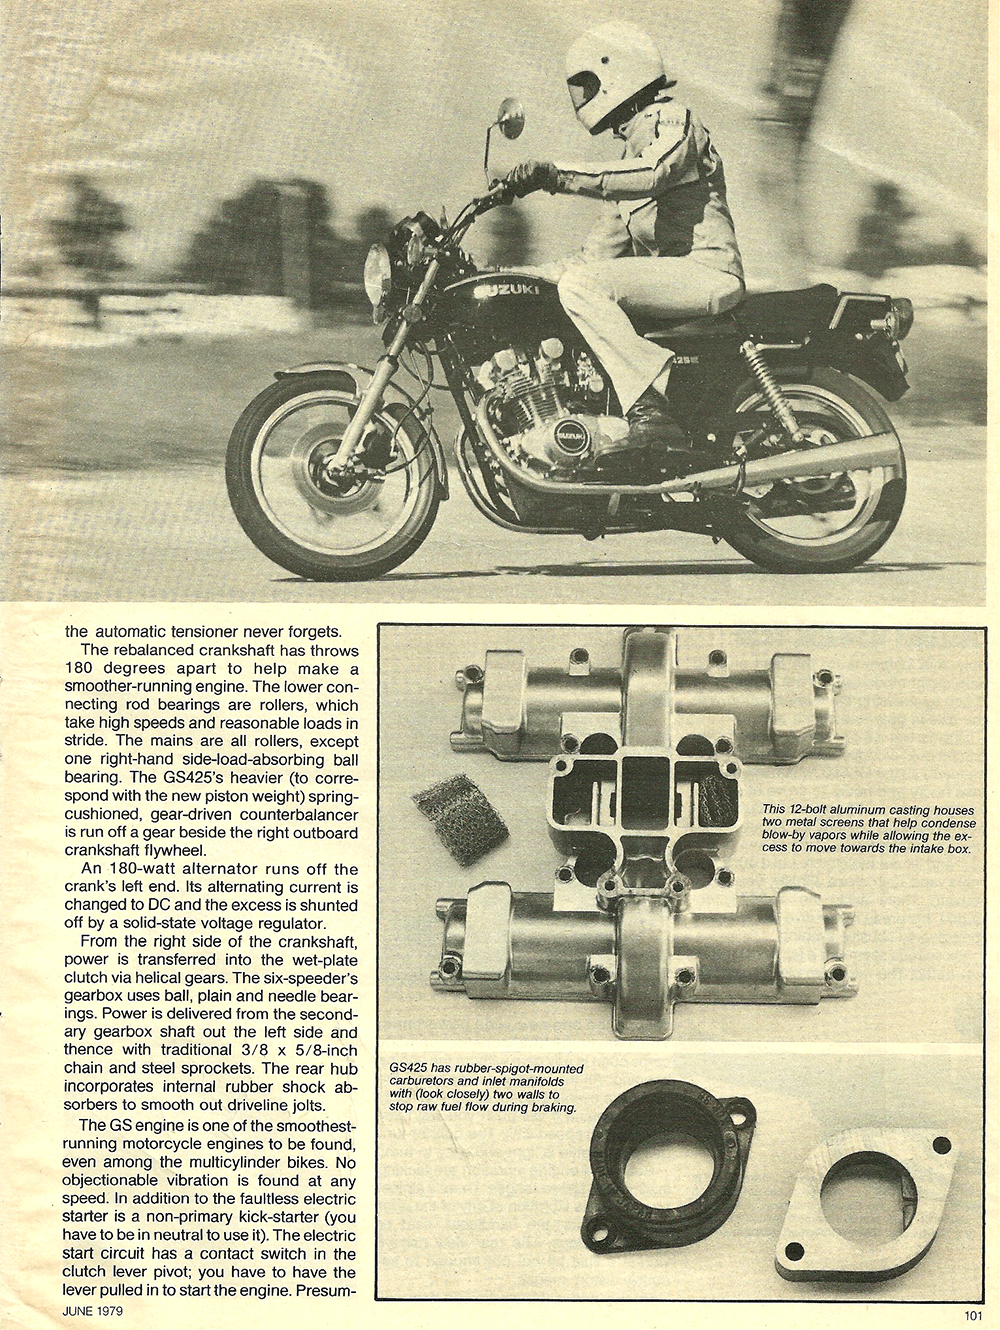 1979 Suzuki GS425E road test 04.jpg